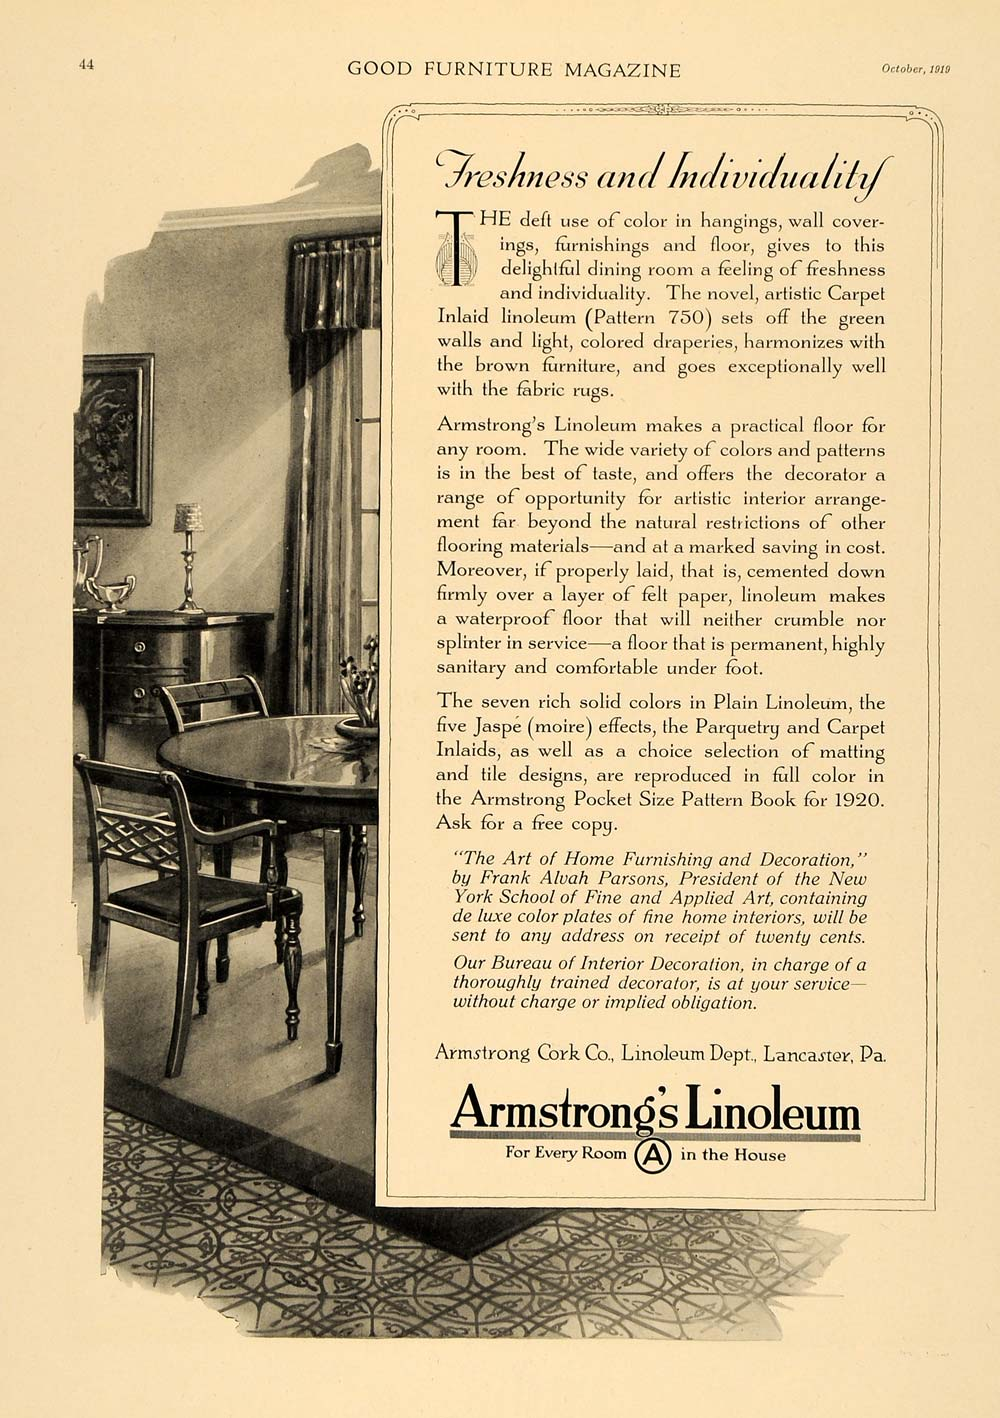 1919 Ad Armstrong Linoleum Jaspe Partquetry Inlaid - ORIGINAL ADVERTISING GF1